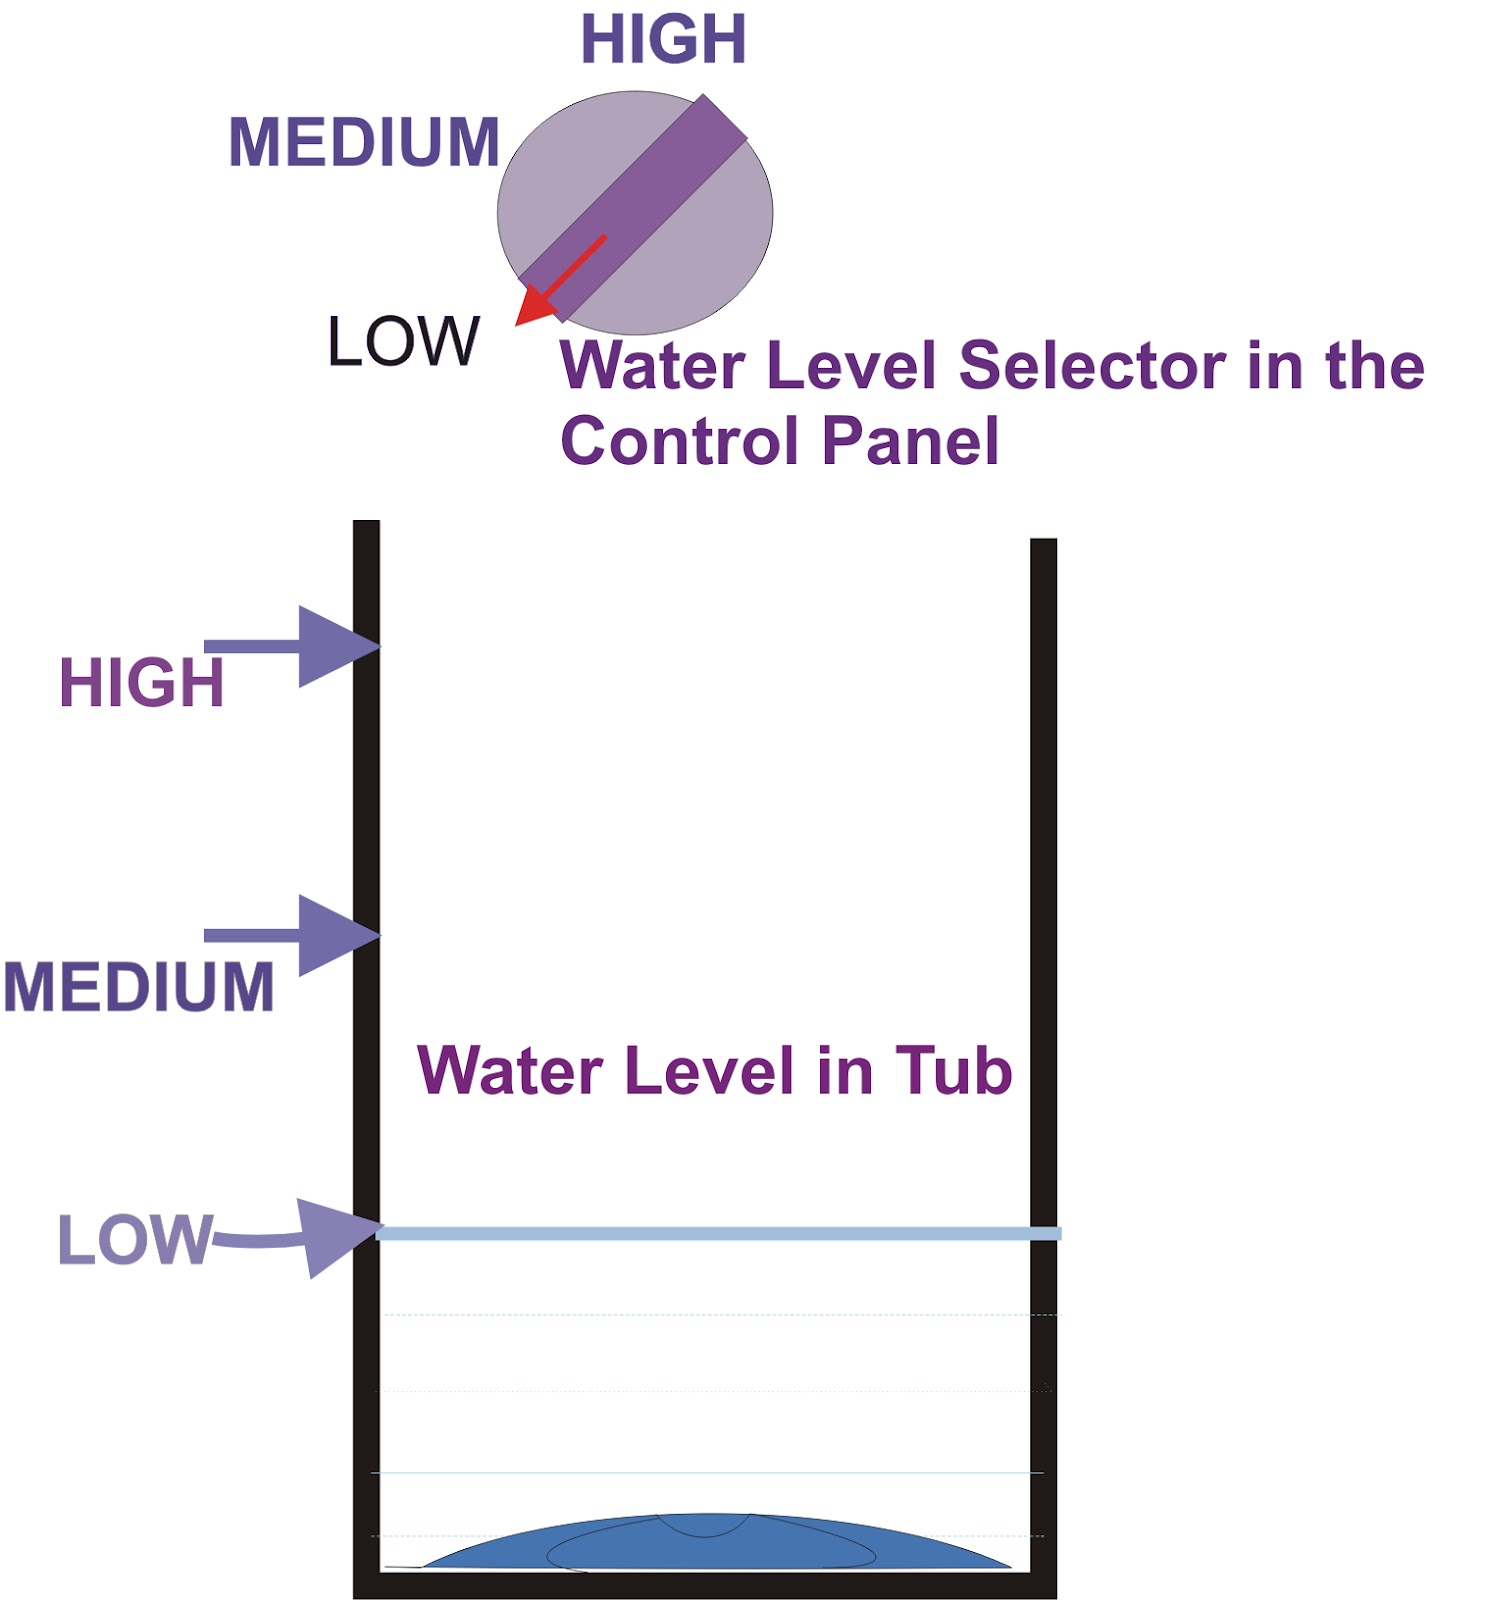 hight resolution of in fuzzy logic washing machines we don t need to select the water level instead the machine itself selects the water level according to the weight and